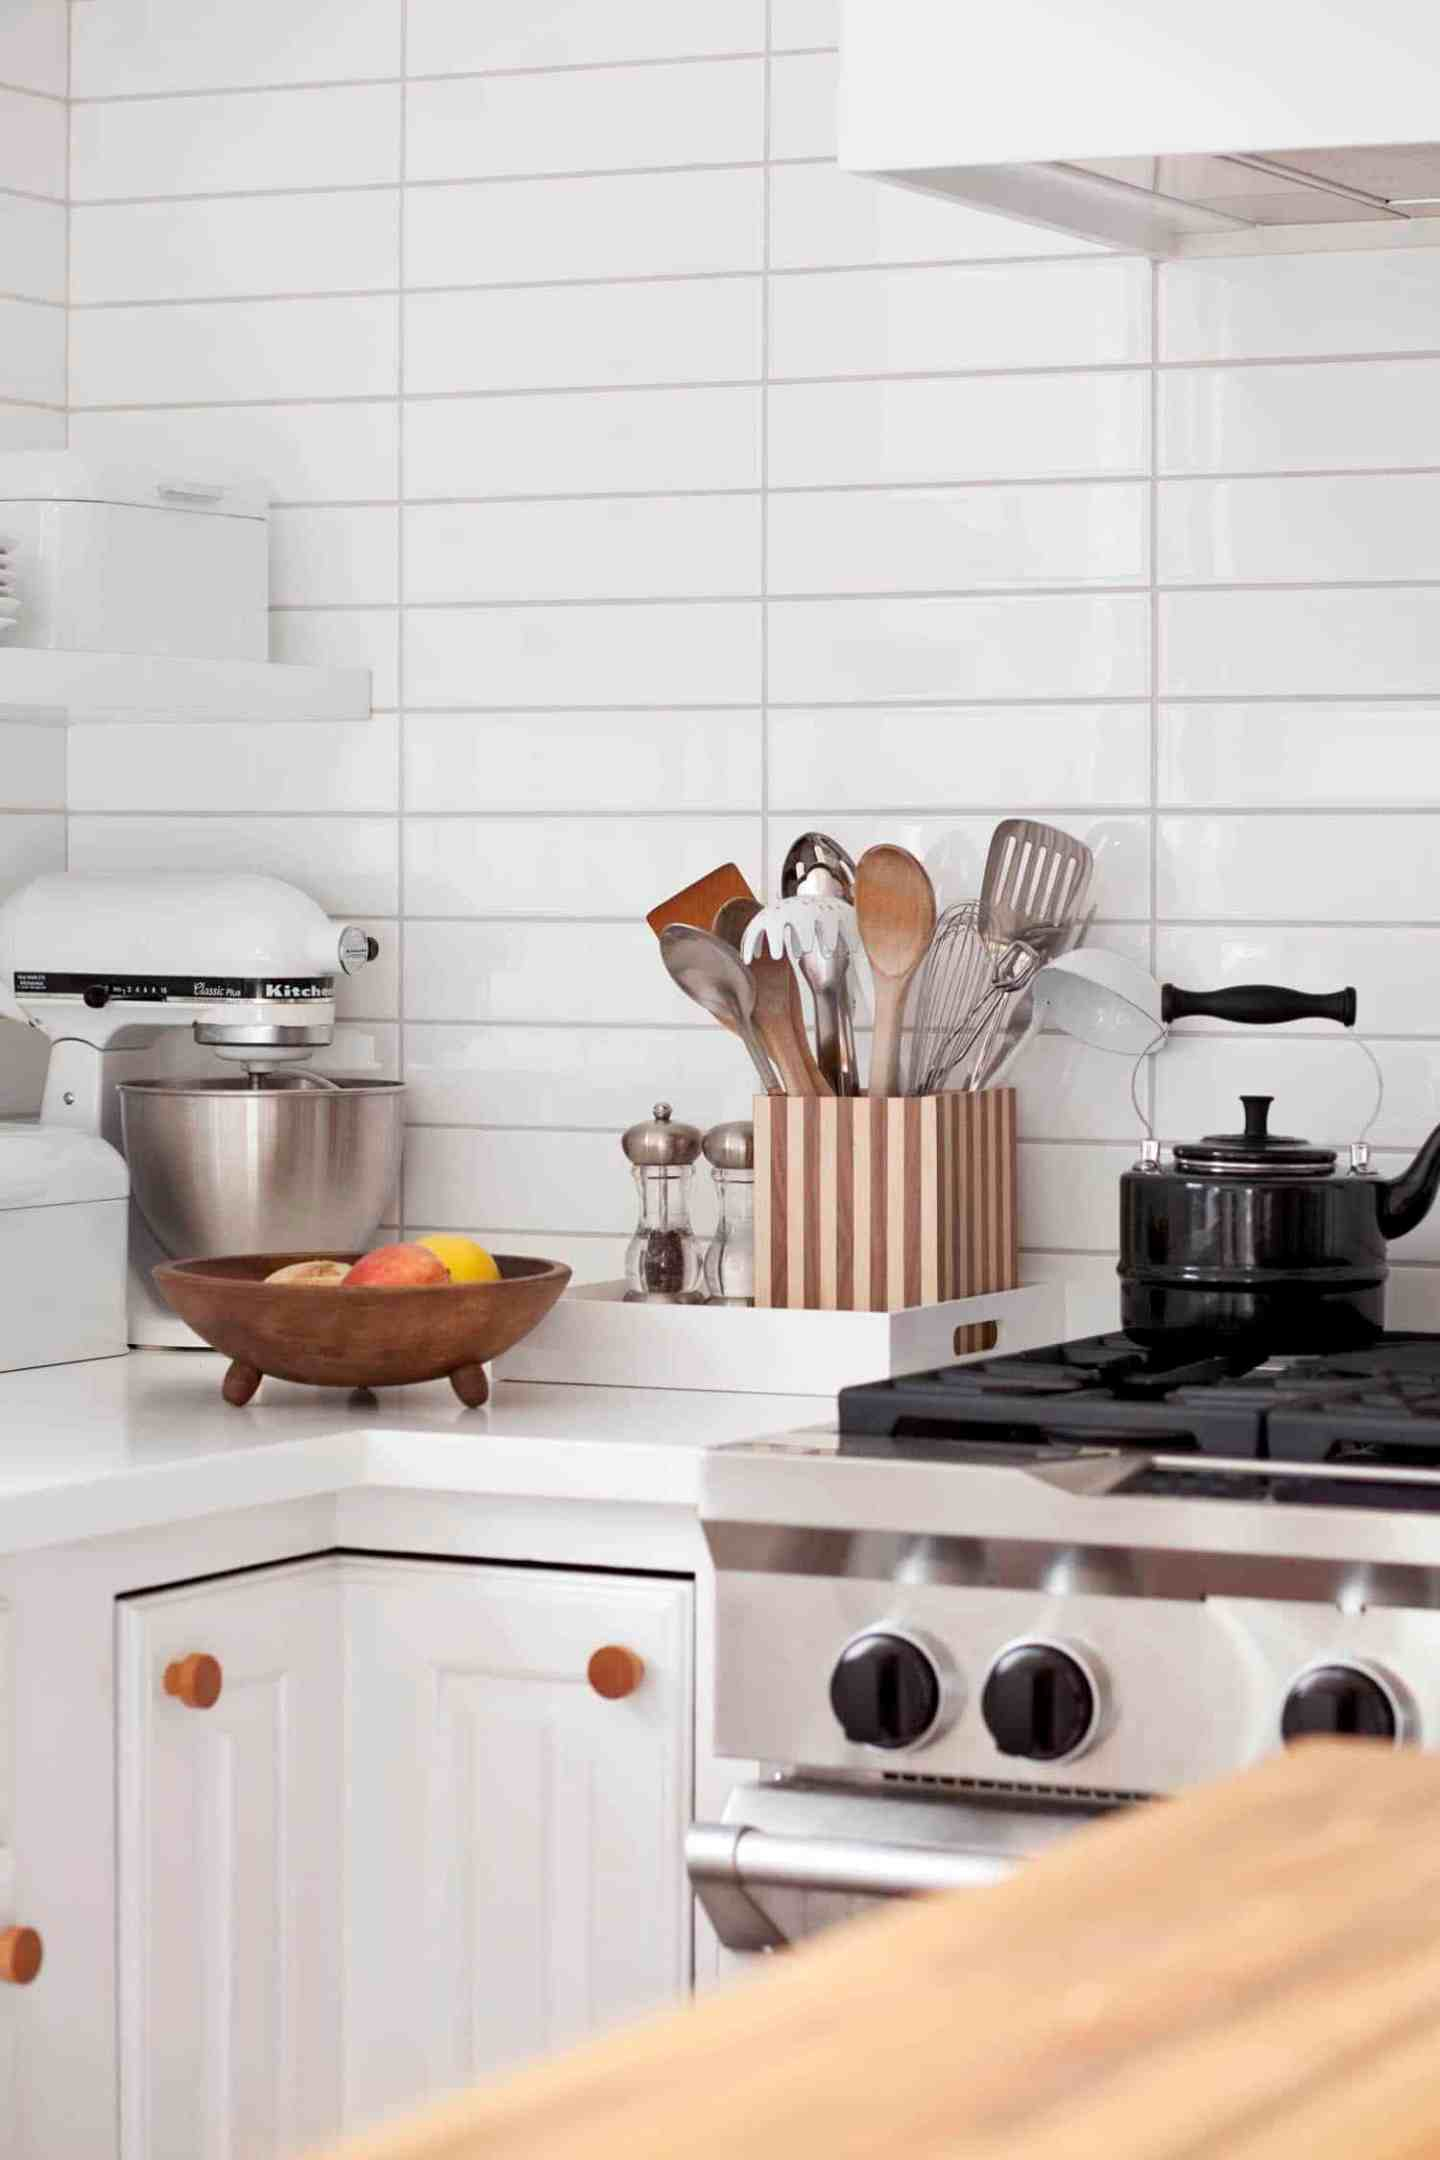 DIY Kitchen Utensil Holder   15 Stylish DIY Projects for Organizing Your Home #organizing #diy #diyhome #clutterbustingtips